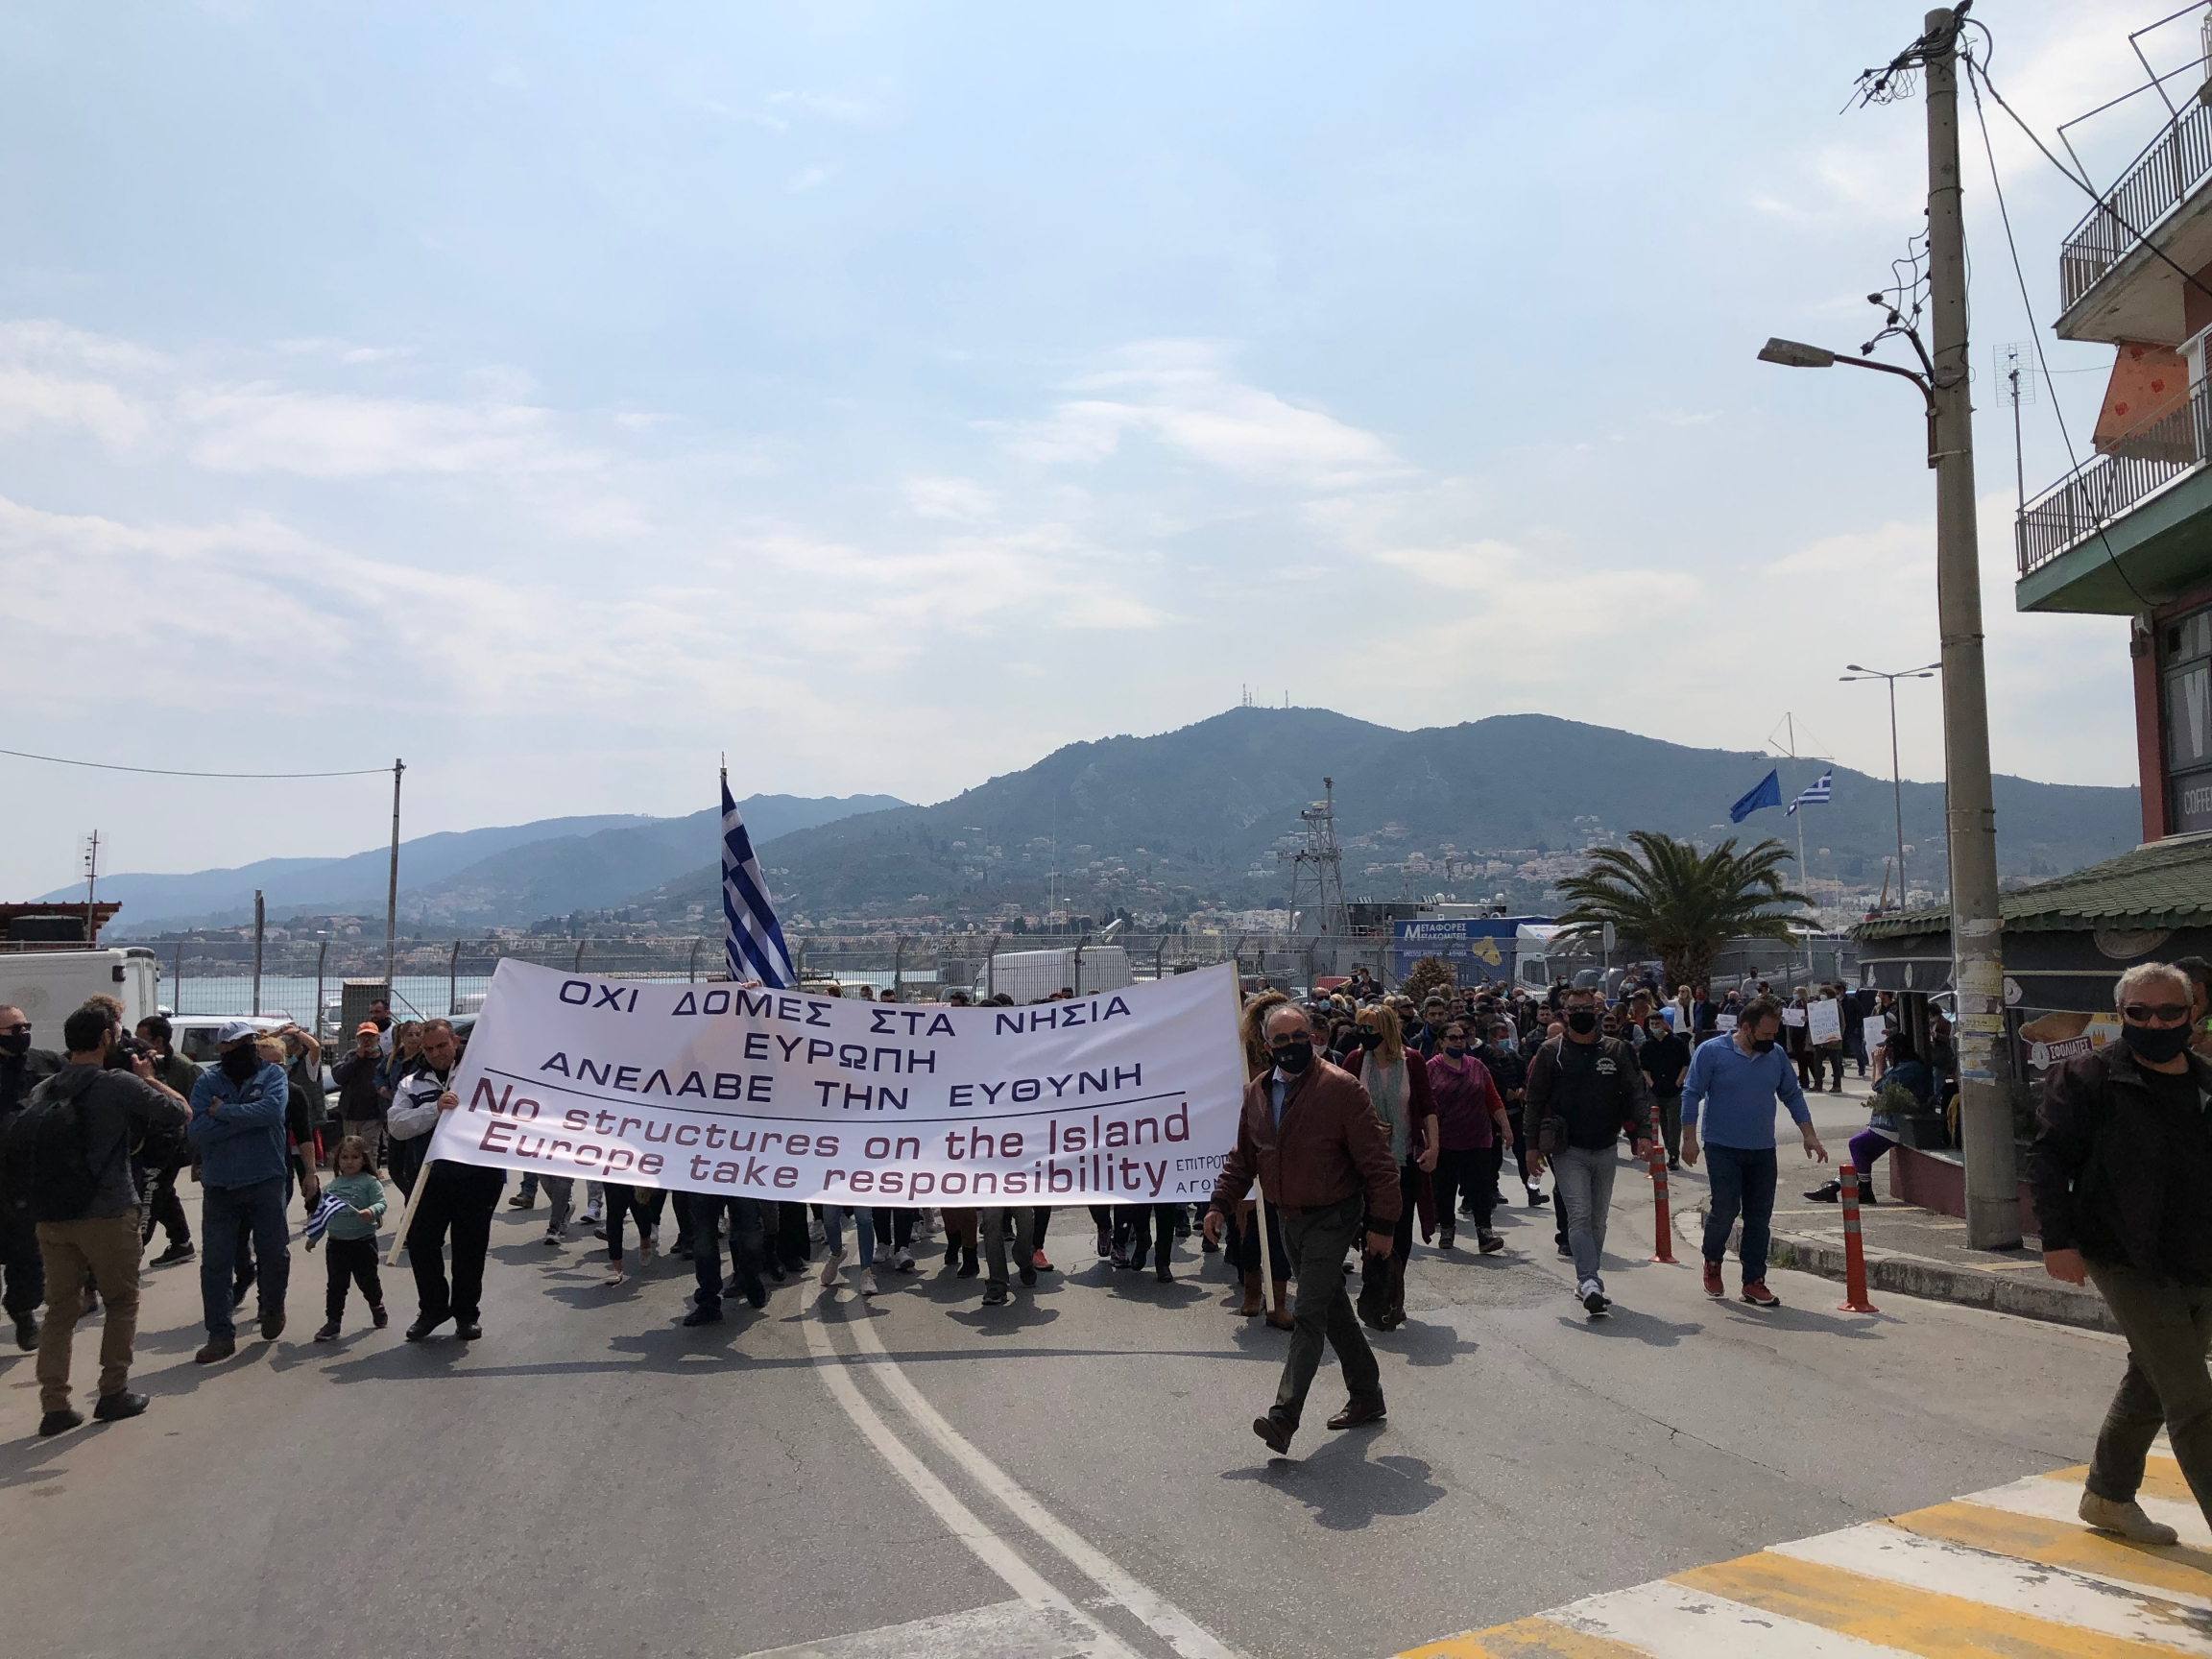 Locals on Lesbos protest the creation of a new migrant facility on the island.